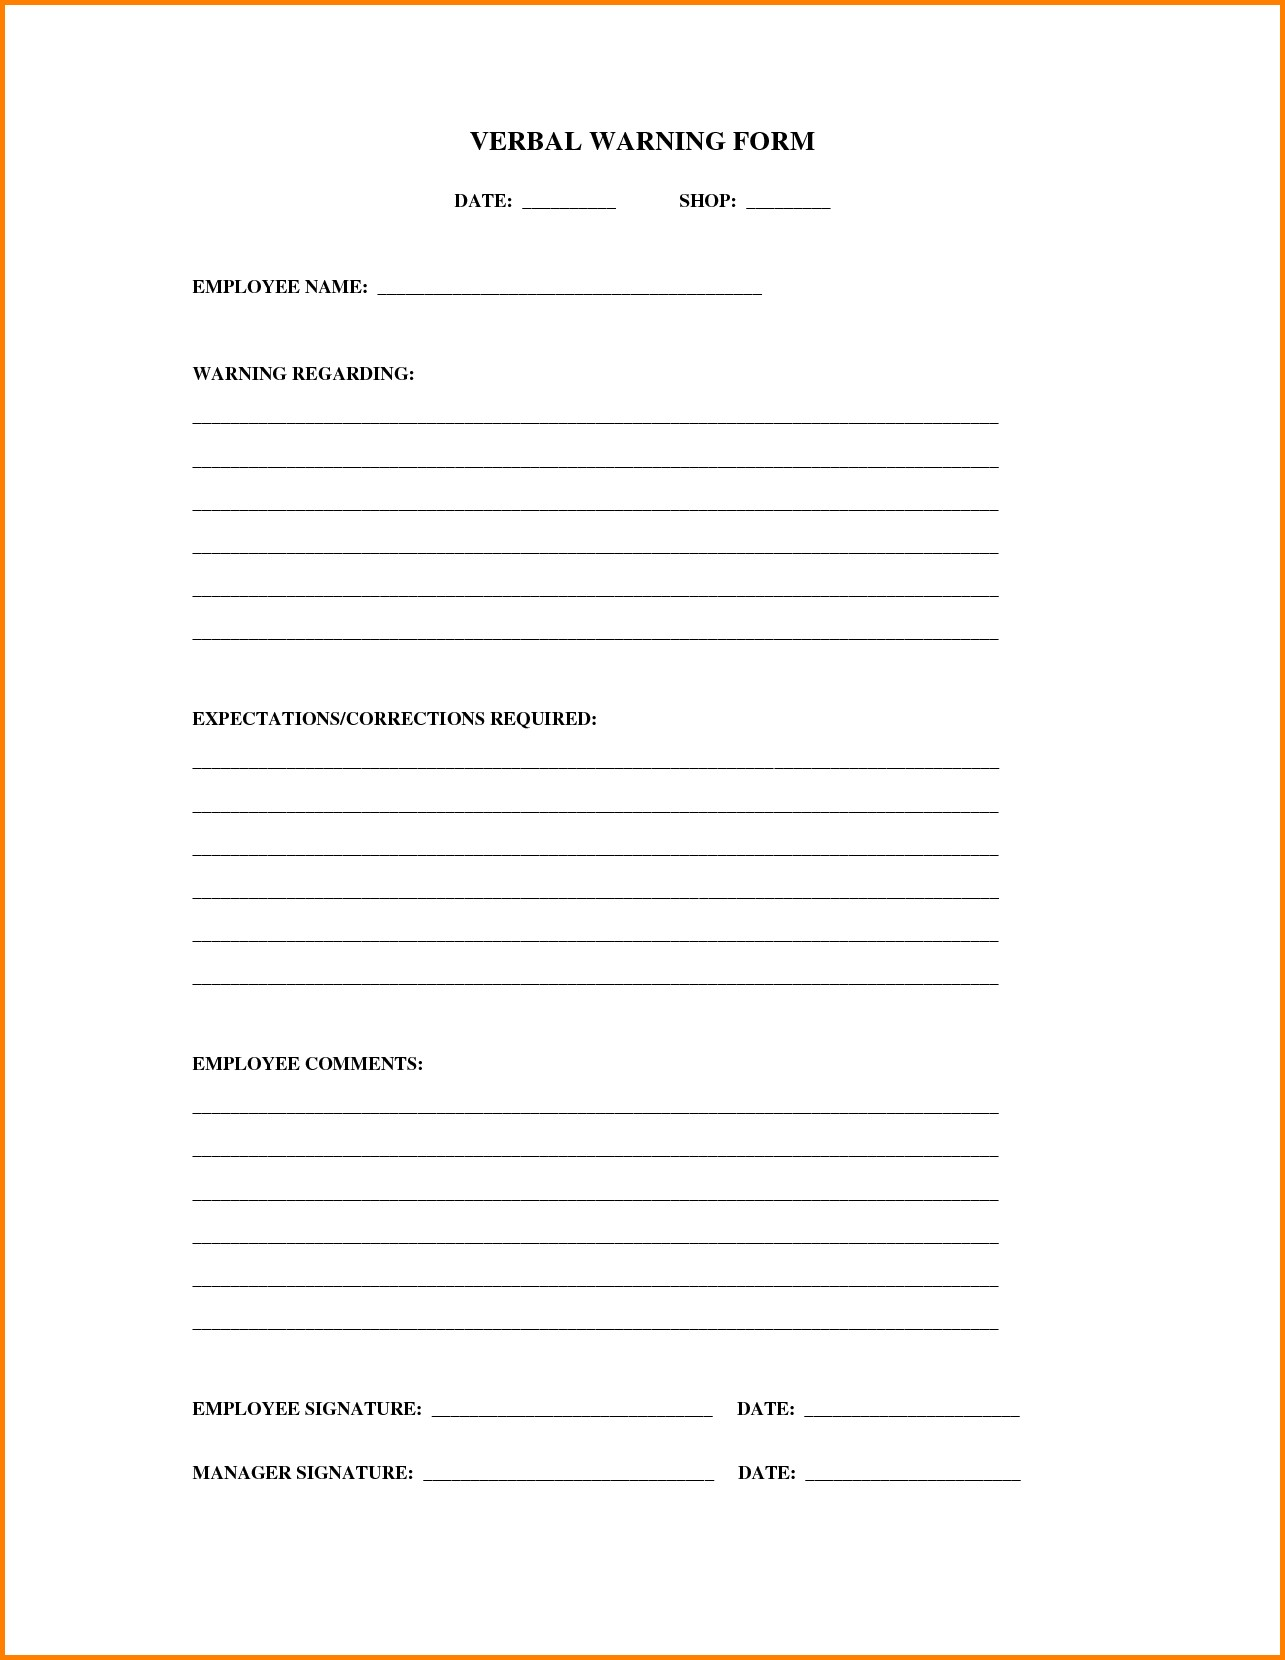 employee verbal warning form April.onthemarch.co